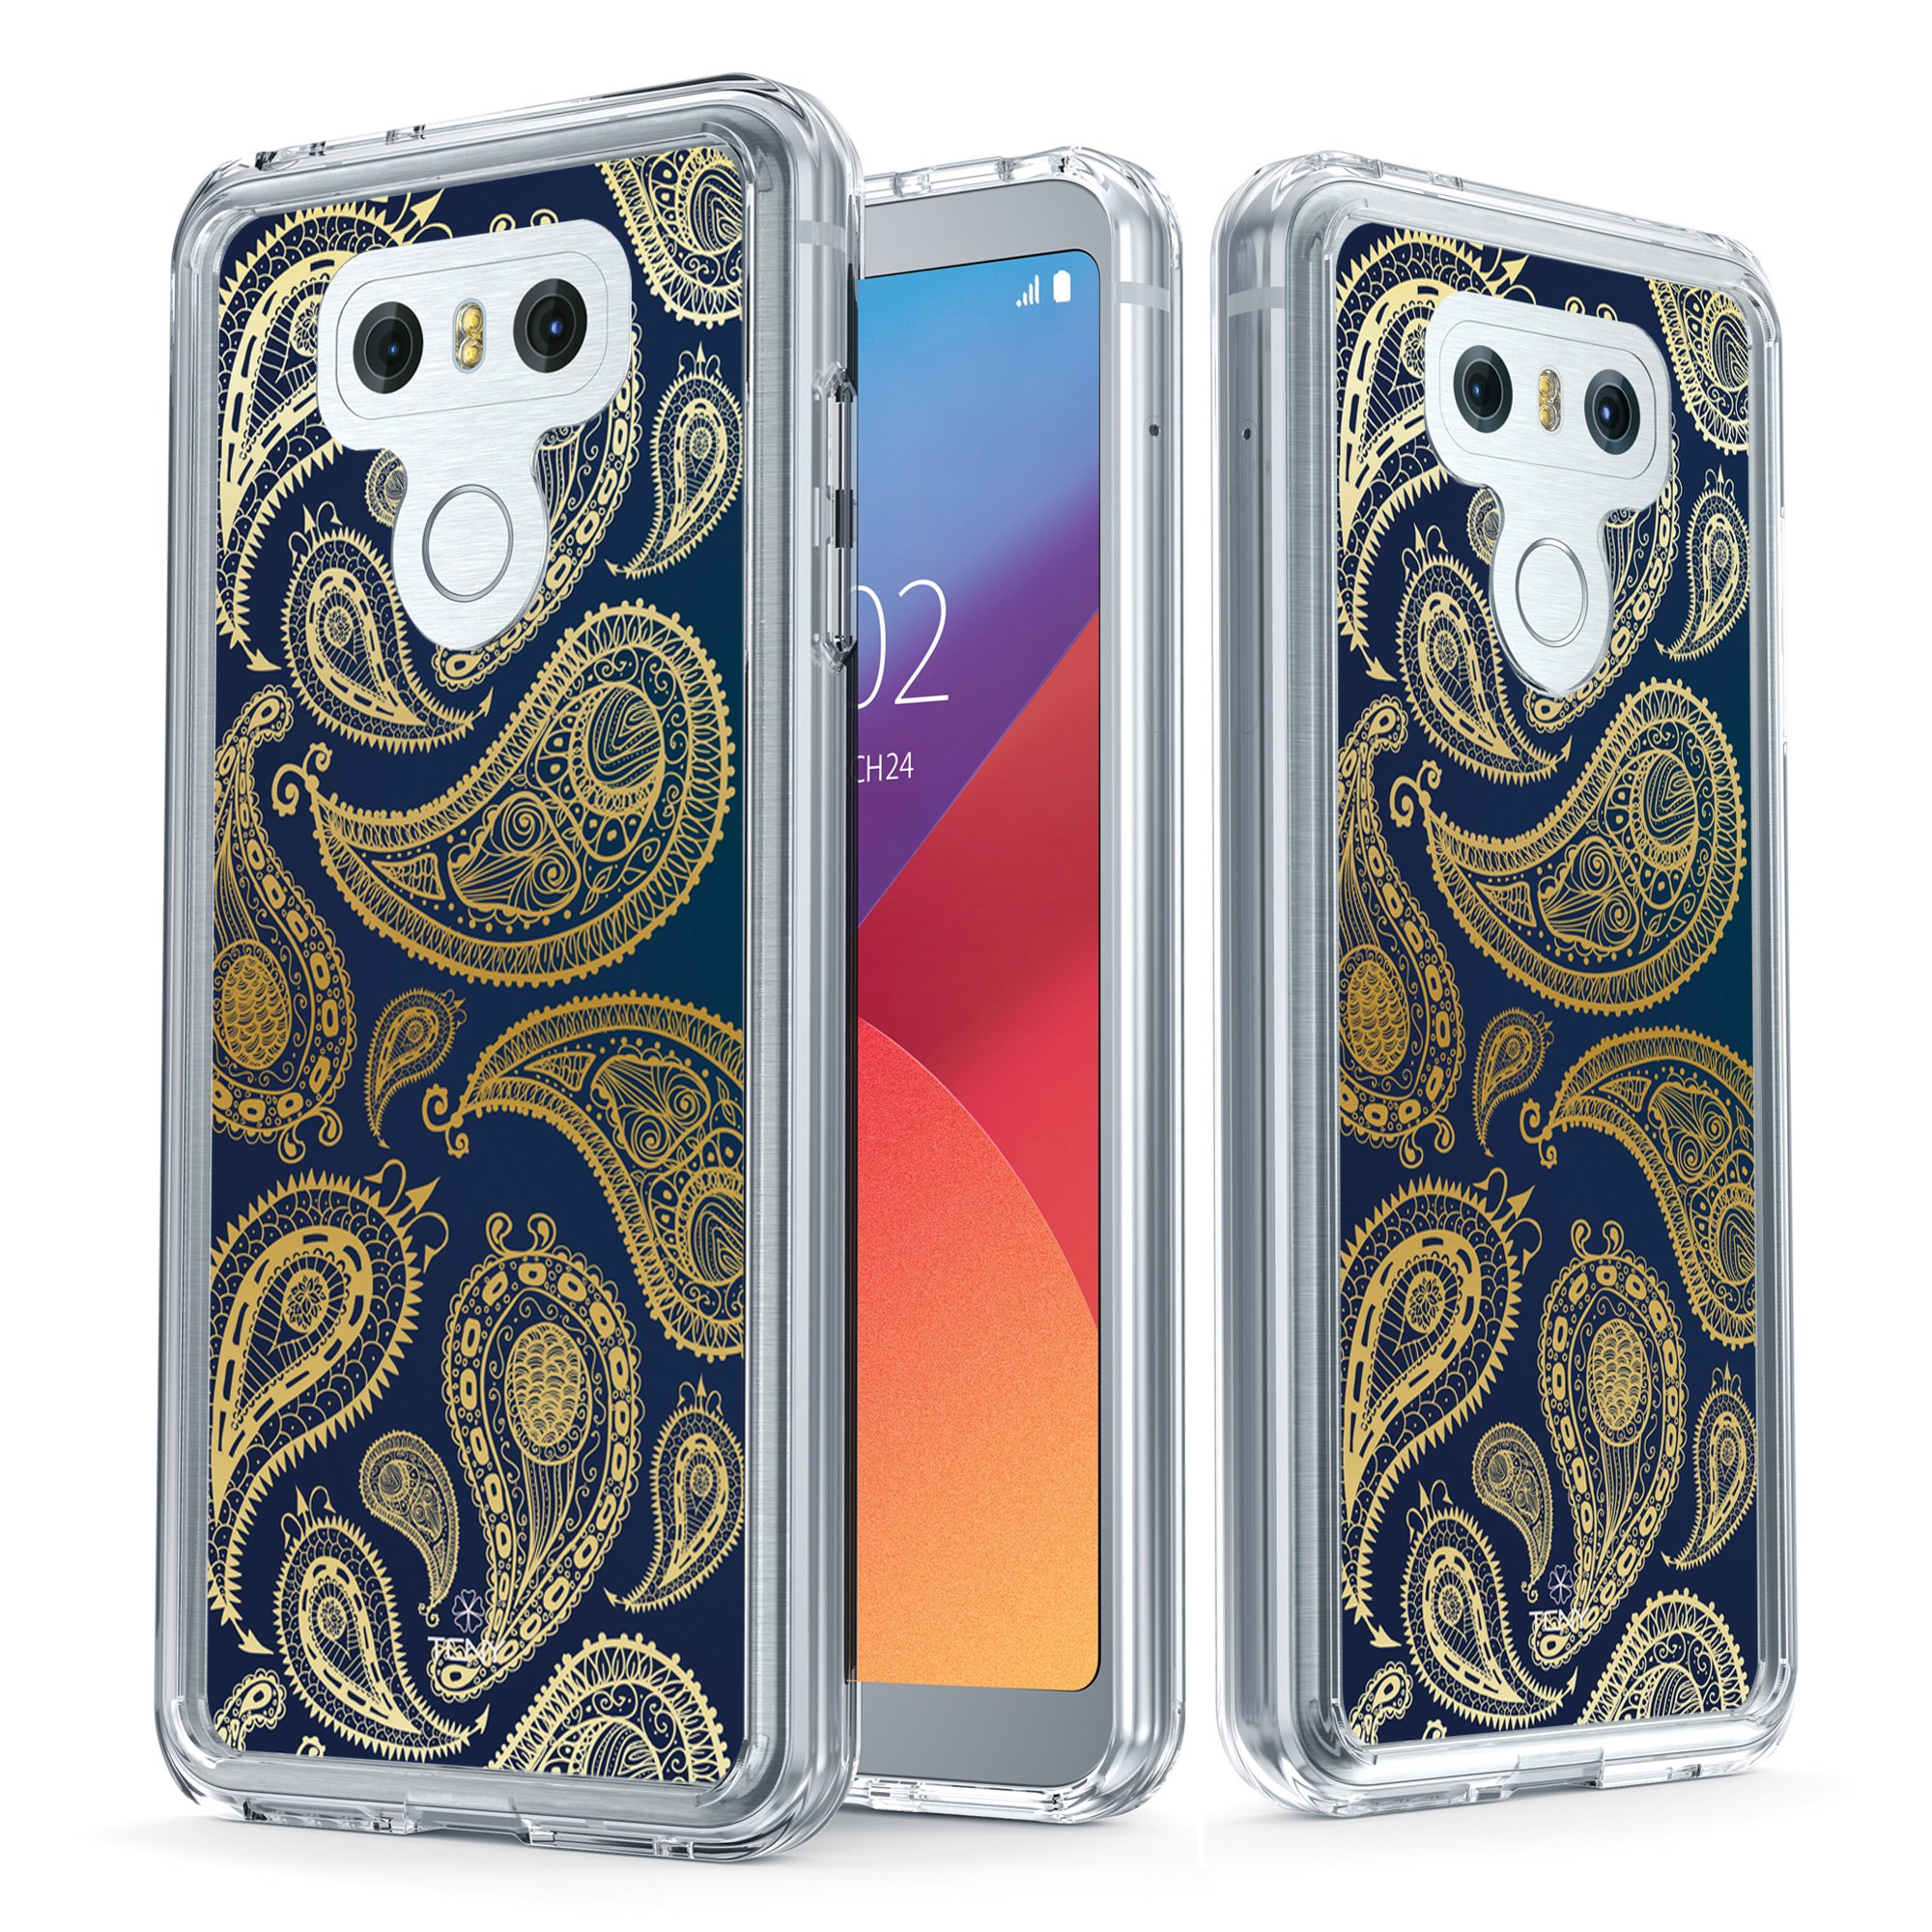 True Color Case Compatible with LG G6 Case - Clear-Shield Golden Paisley Printed on Clear Back - Soft and Hard Thin Shock Absorbing Protective Bumper Cover